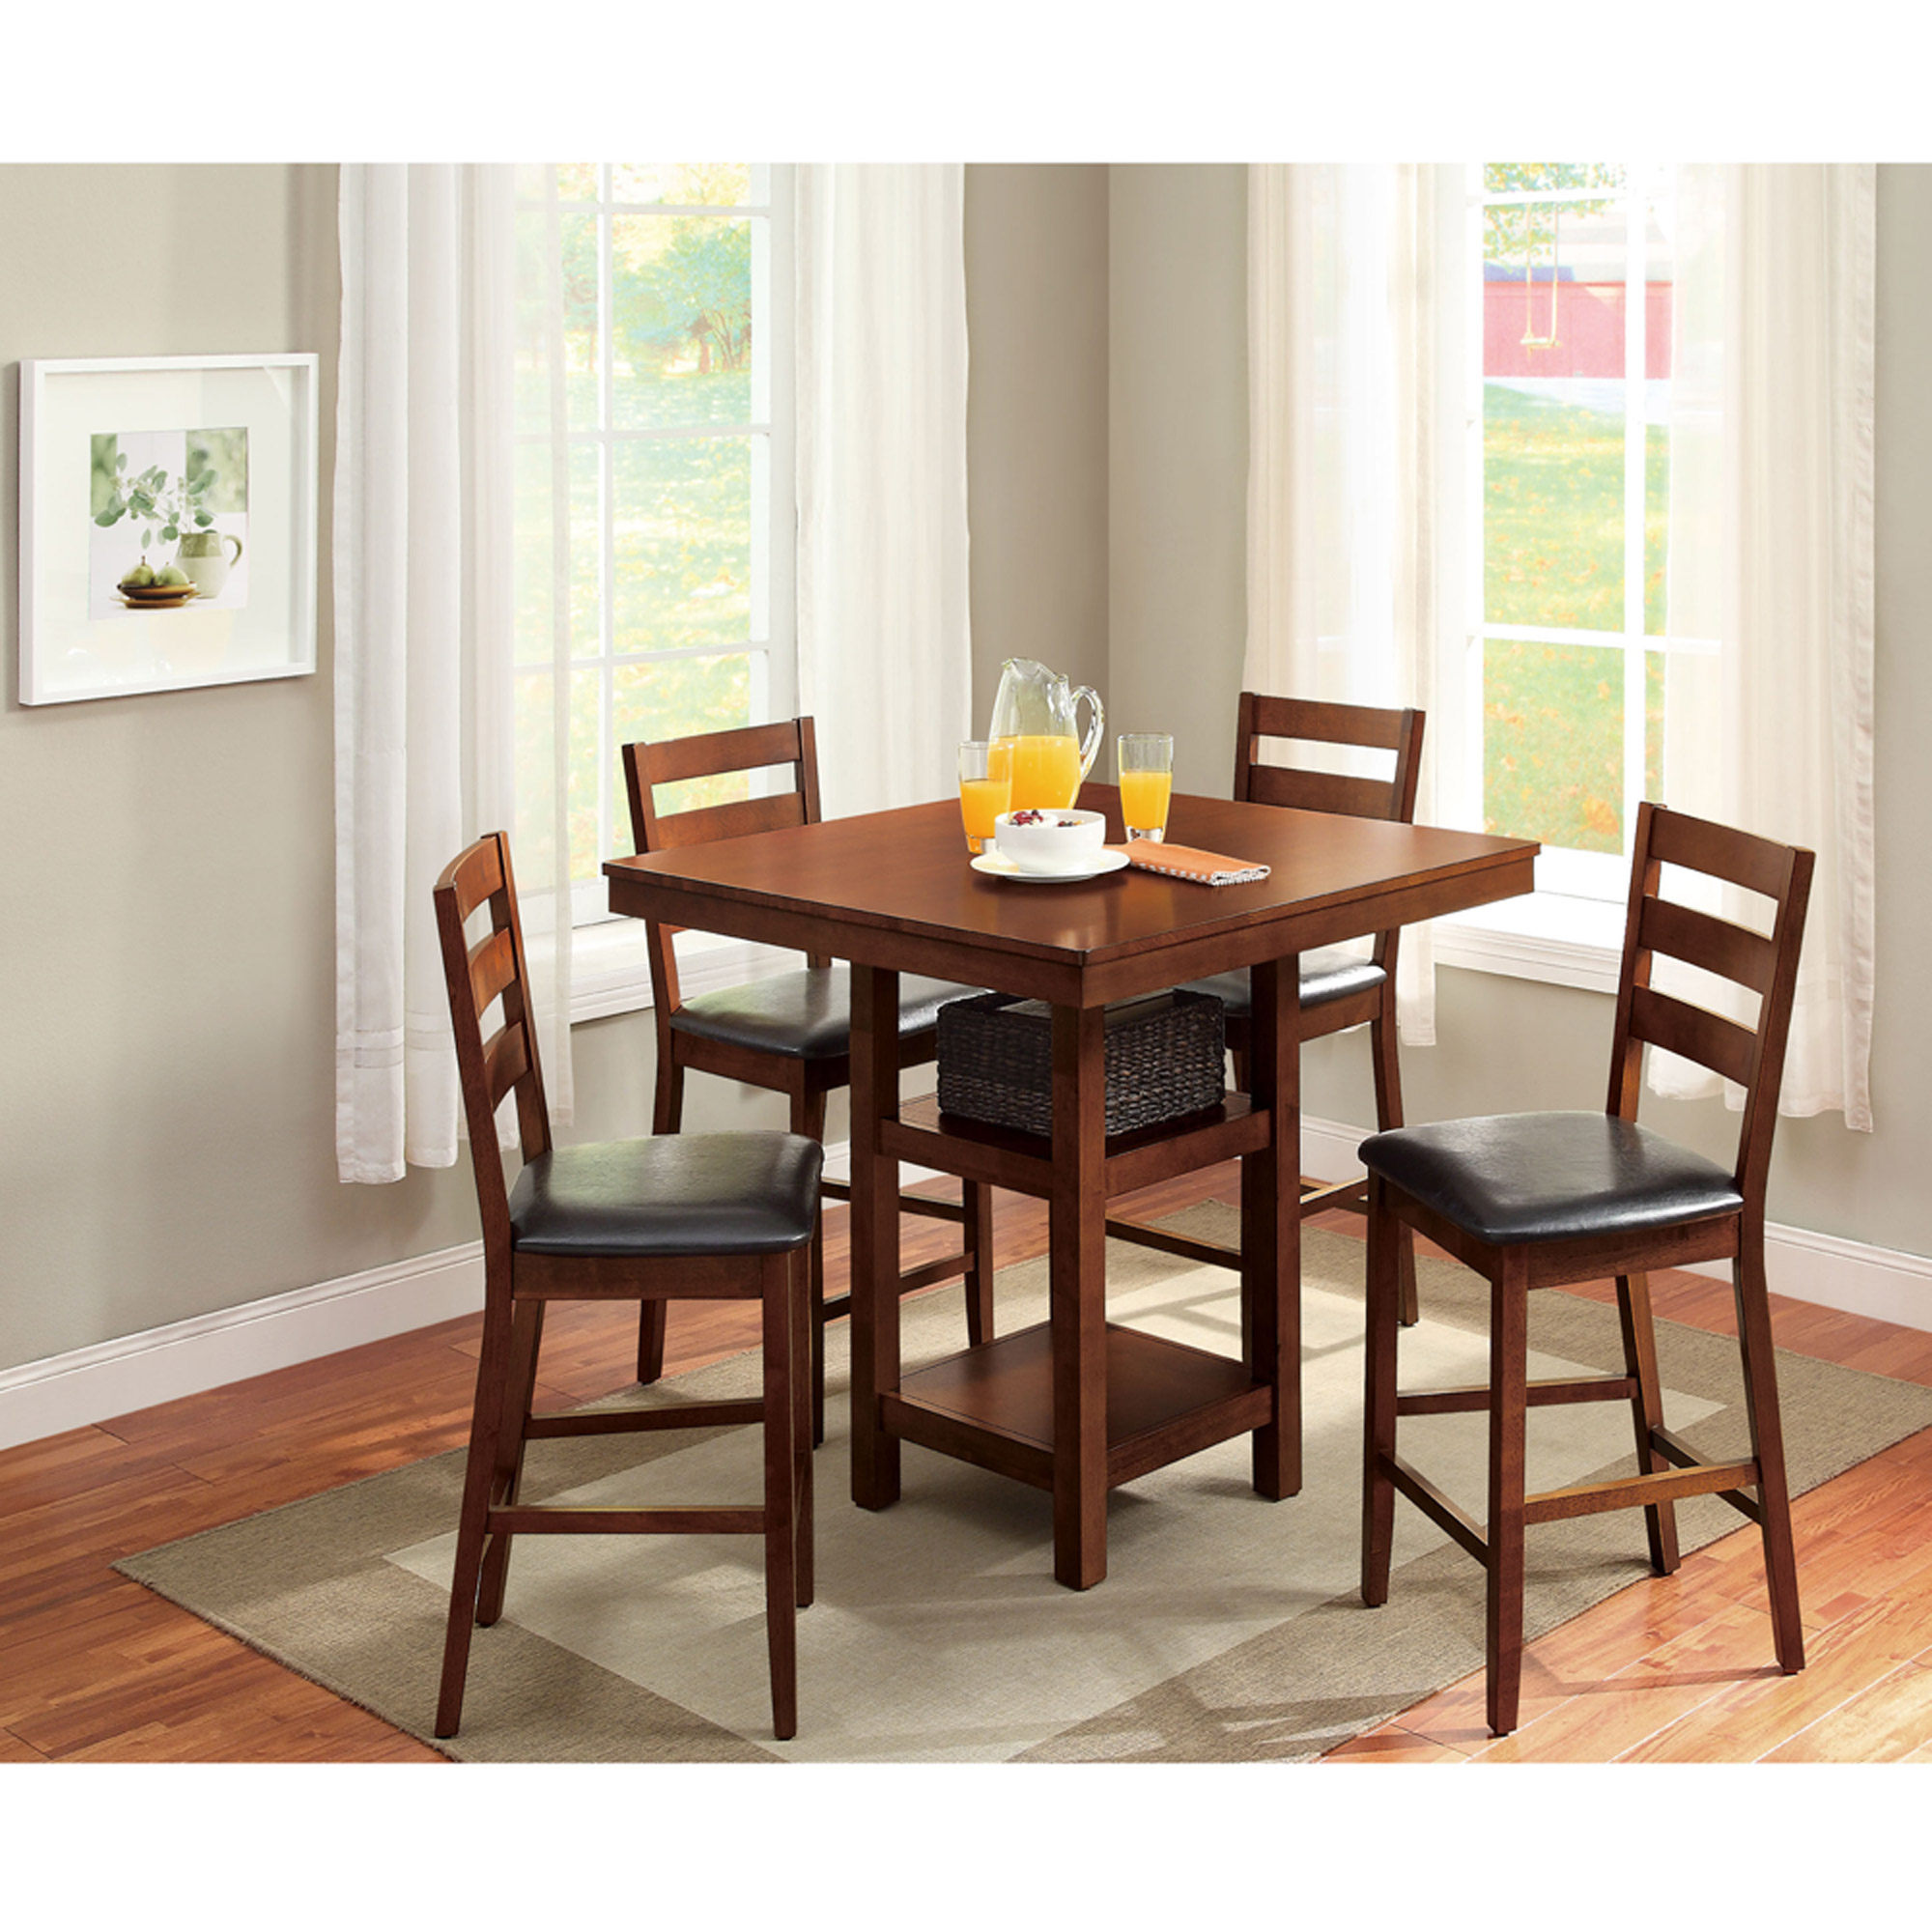 Good Details About Better Homes And Gardens Dalton Park 5 Piece Counter Height Dining  Set, Mocha